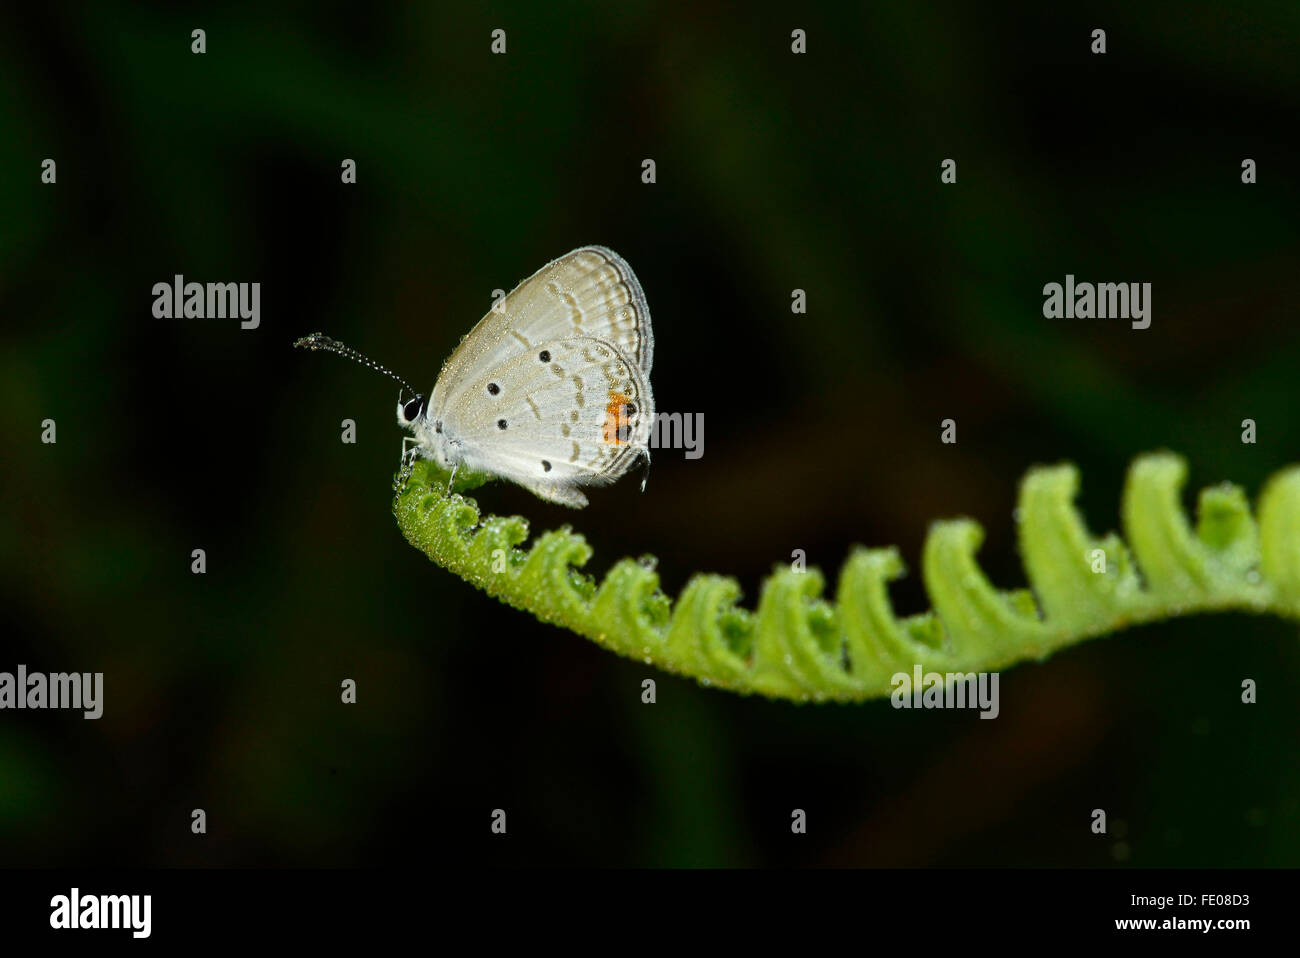 Sri Lankan Long-tailed Blue Butterfly (Lampides boeticus) adult covered in dew, resting on fern leaf, Sinharaja - Stock Image